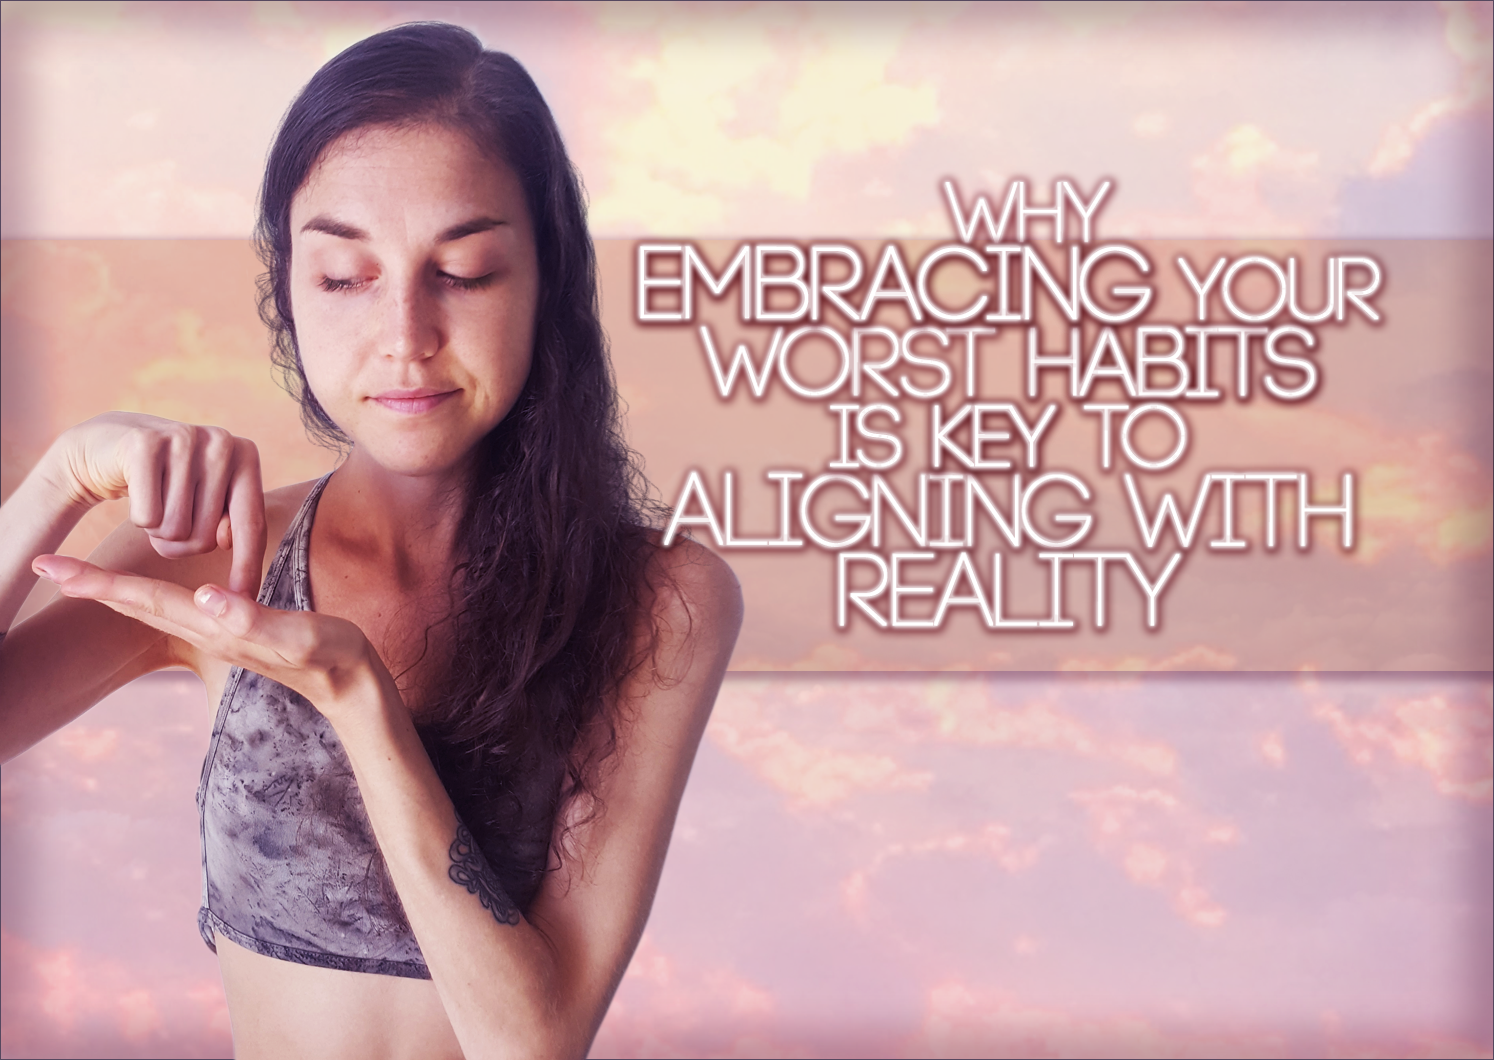 Why Embracing Your WORST Habits Is Key To Aligning With Reality